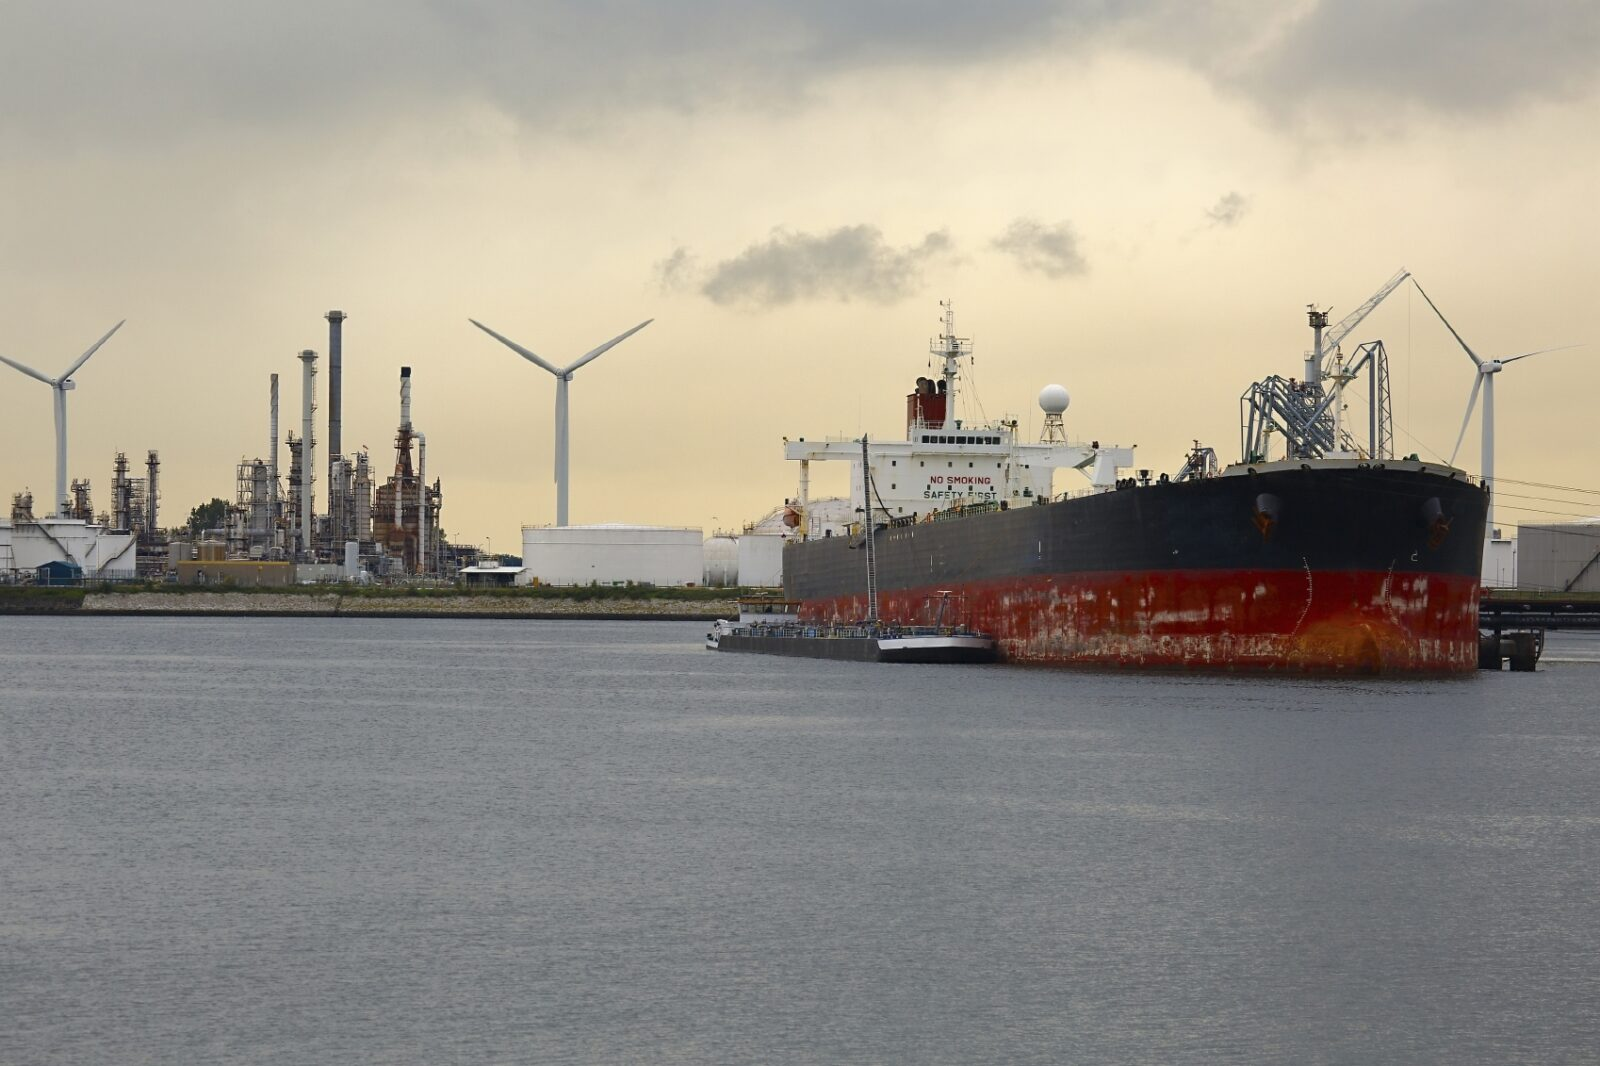 Large crude oil tanker arrived to the refinery dock